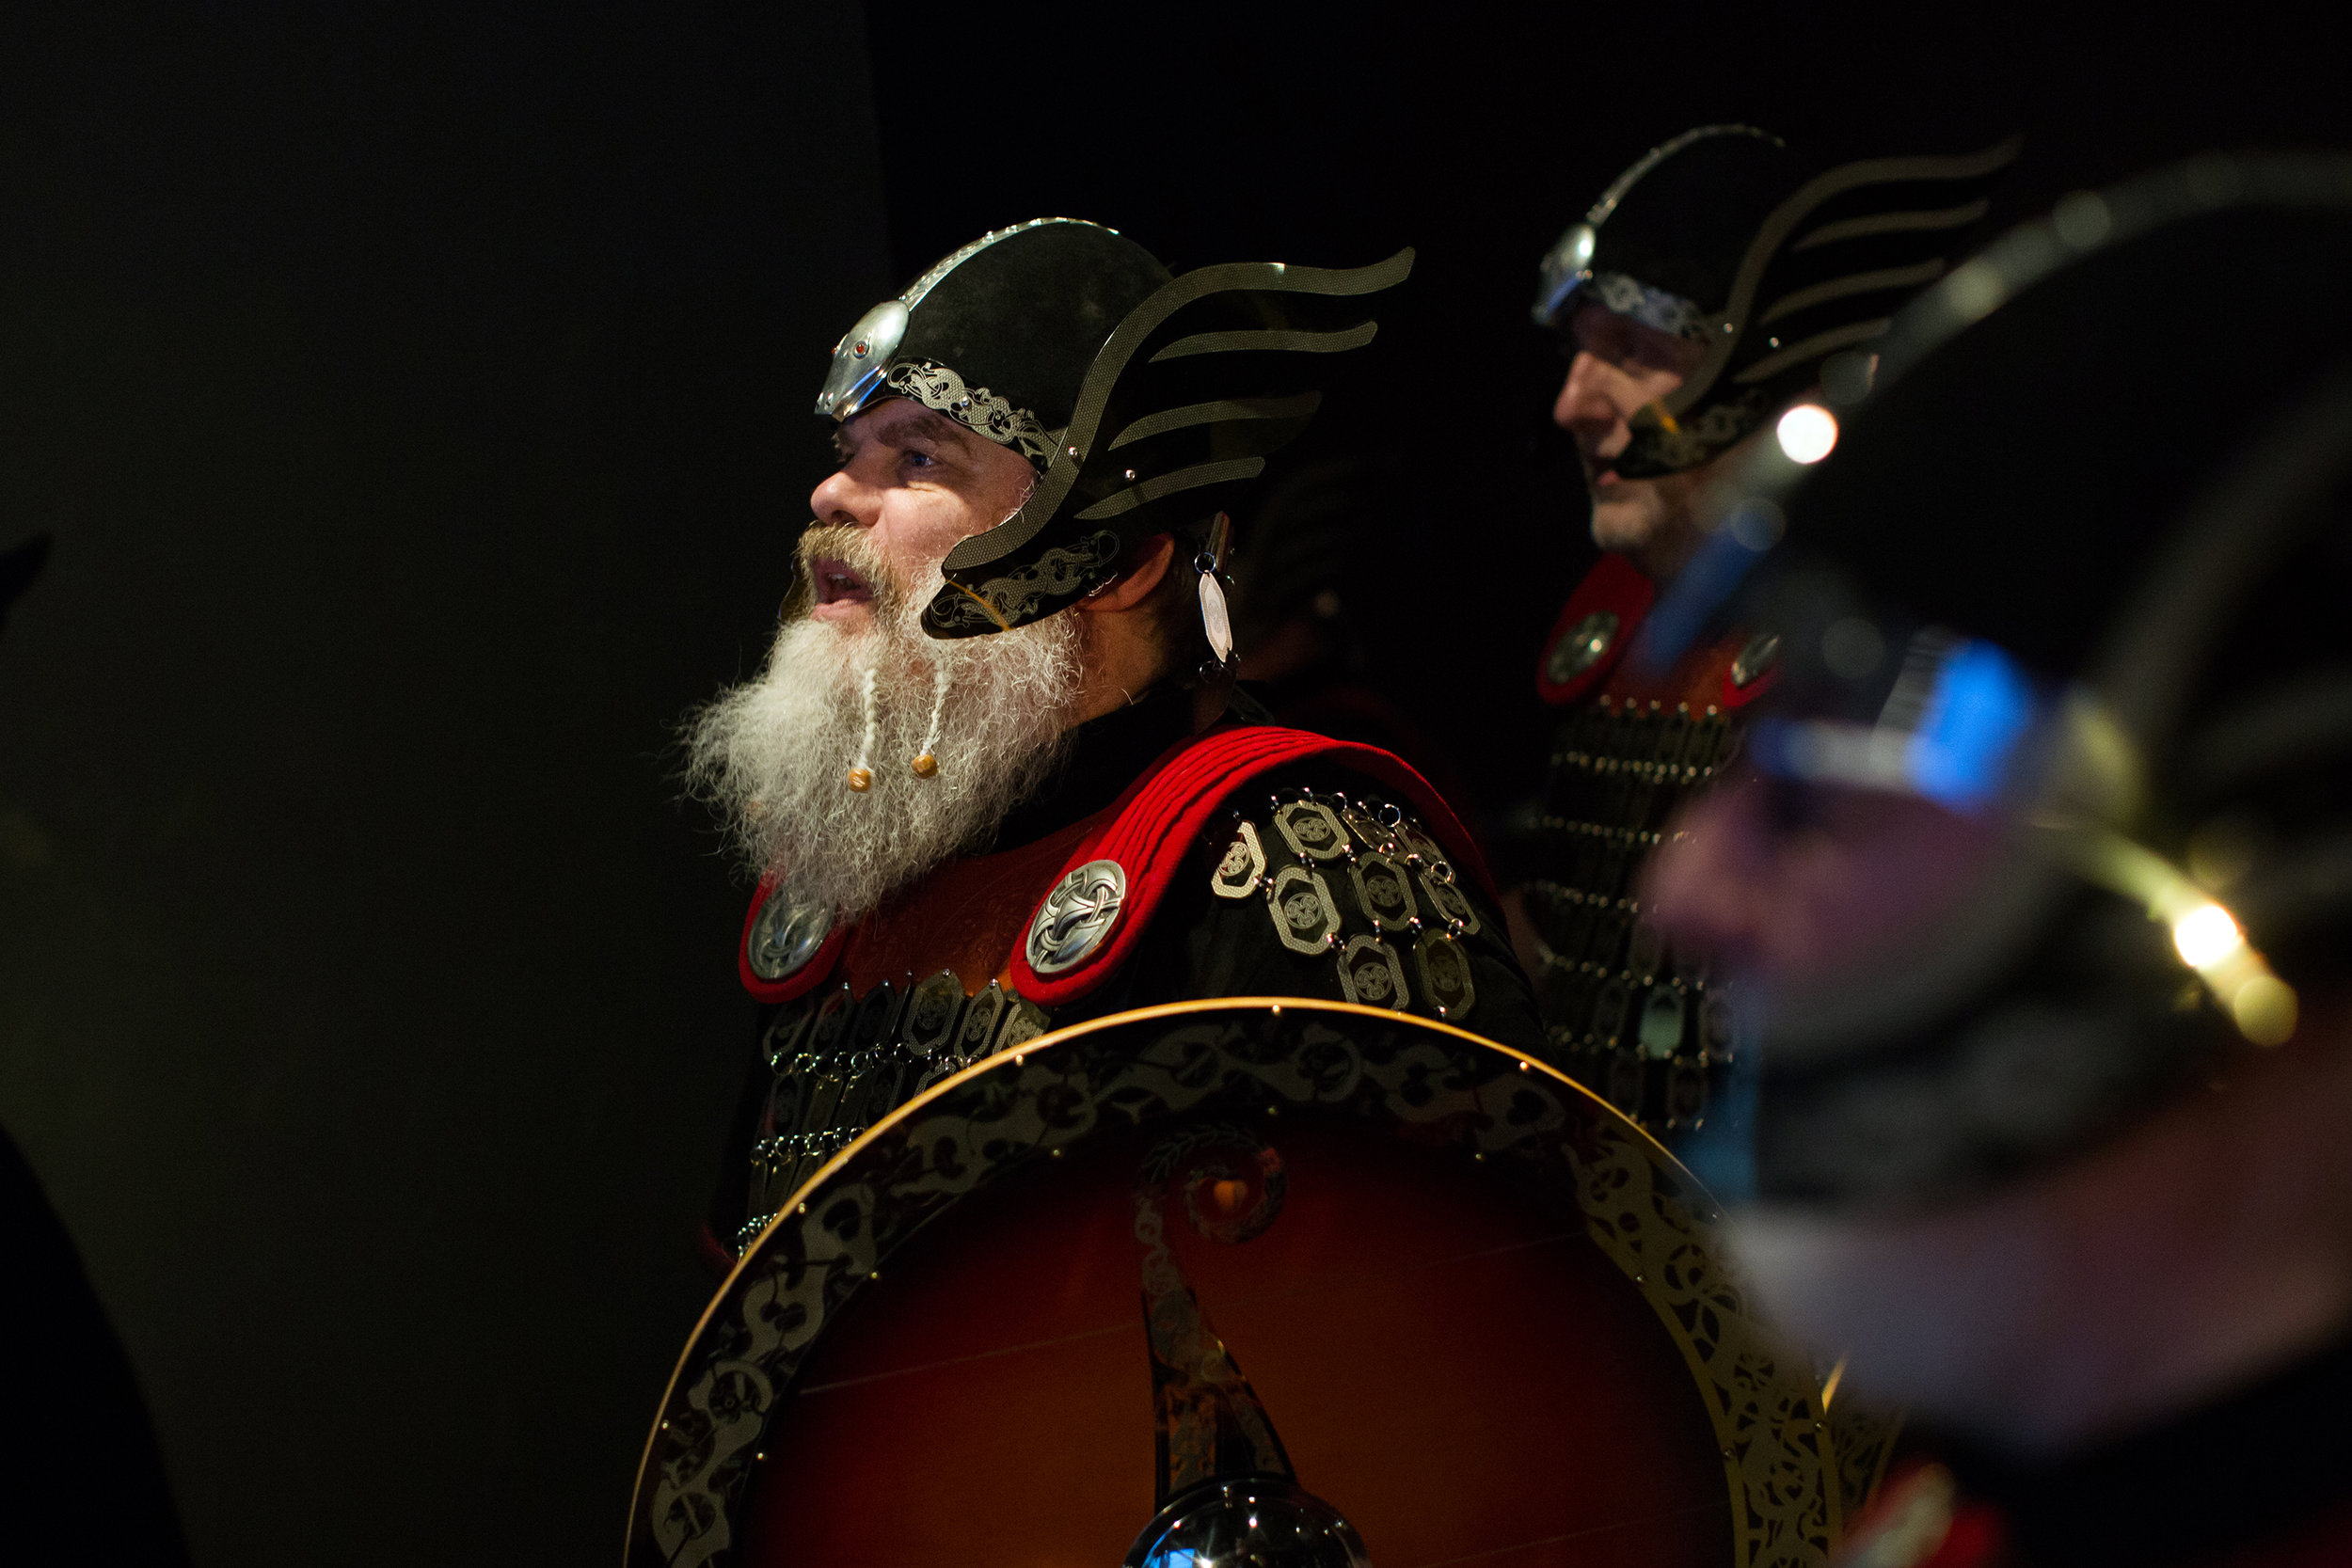 Tim Coote, a member of the Jarl Squad from the Shetland Islands dressed up as a viking at the Discovery Times Square Museum exhibition 'Vikings'  as part of the Tartan Week festivities.